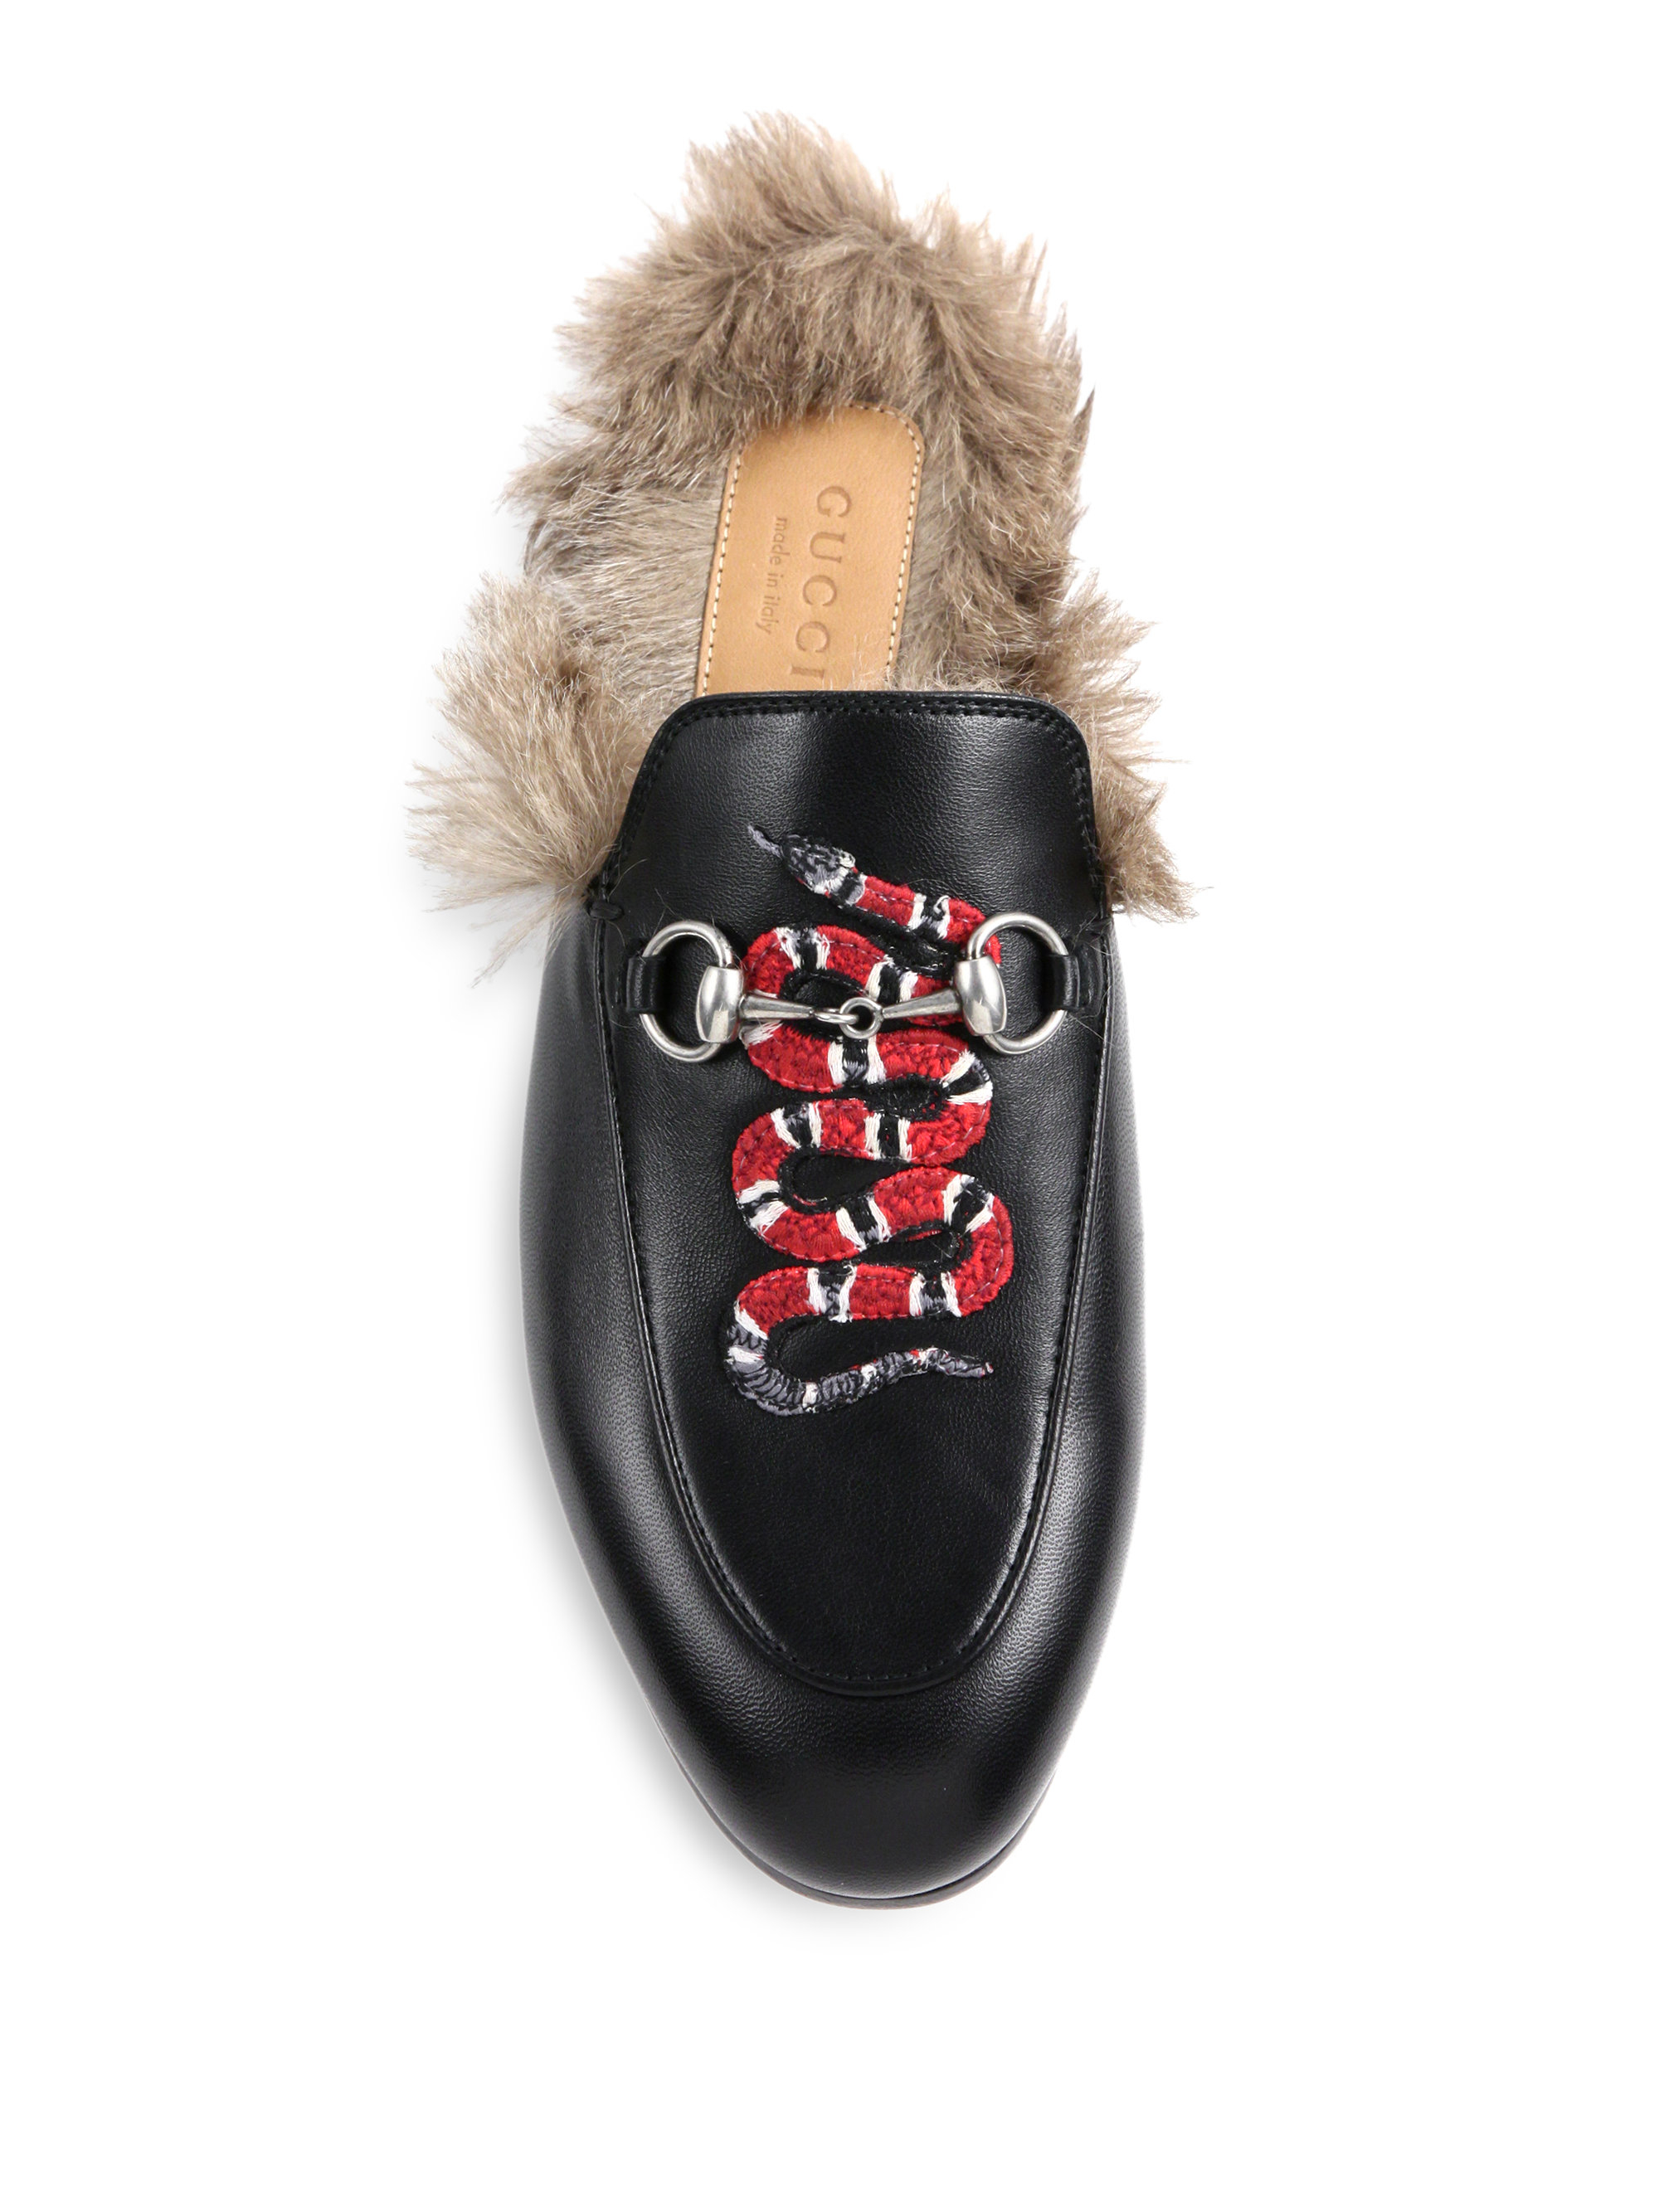 cb47954f282 Lyst - Gucci Princetown Fur-lined Snake Leather Slippers in Black